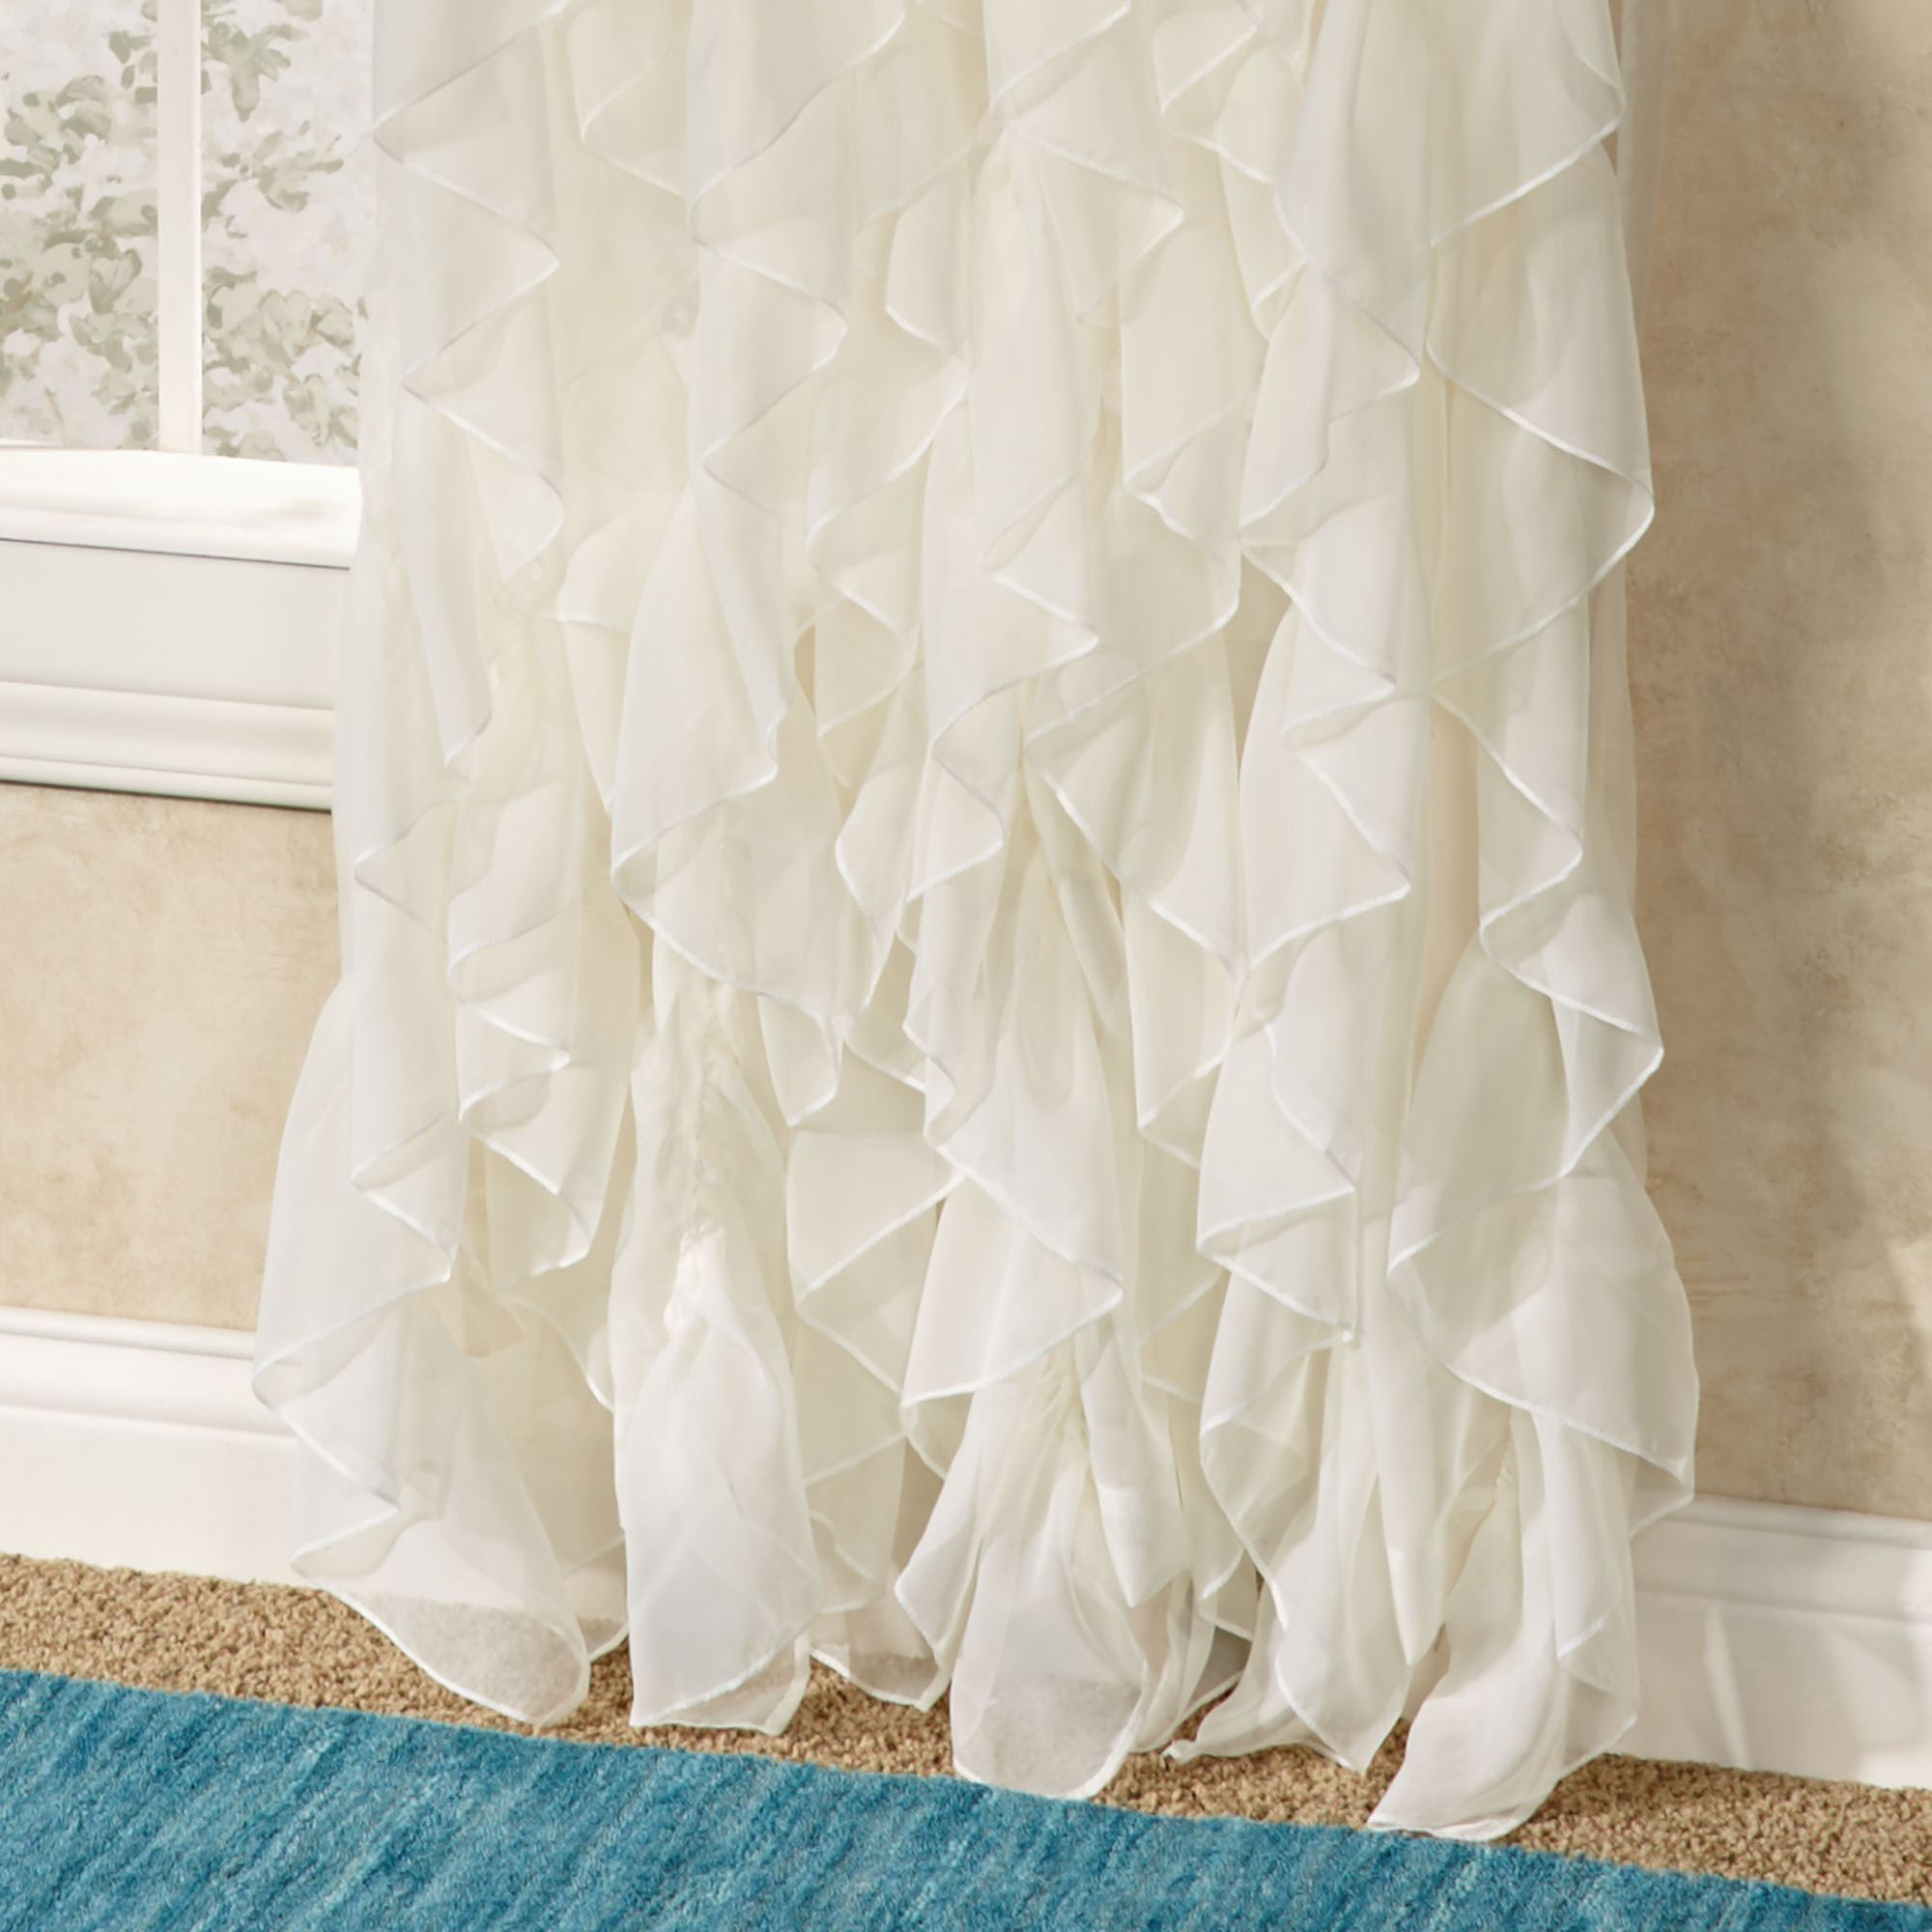 Sheer Voile Ruffled Tier Window Curtain Panels Inside Favorite Cascade Sheer Voile Ruffled Window Treatment (View 9 of 20)